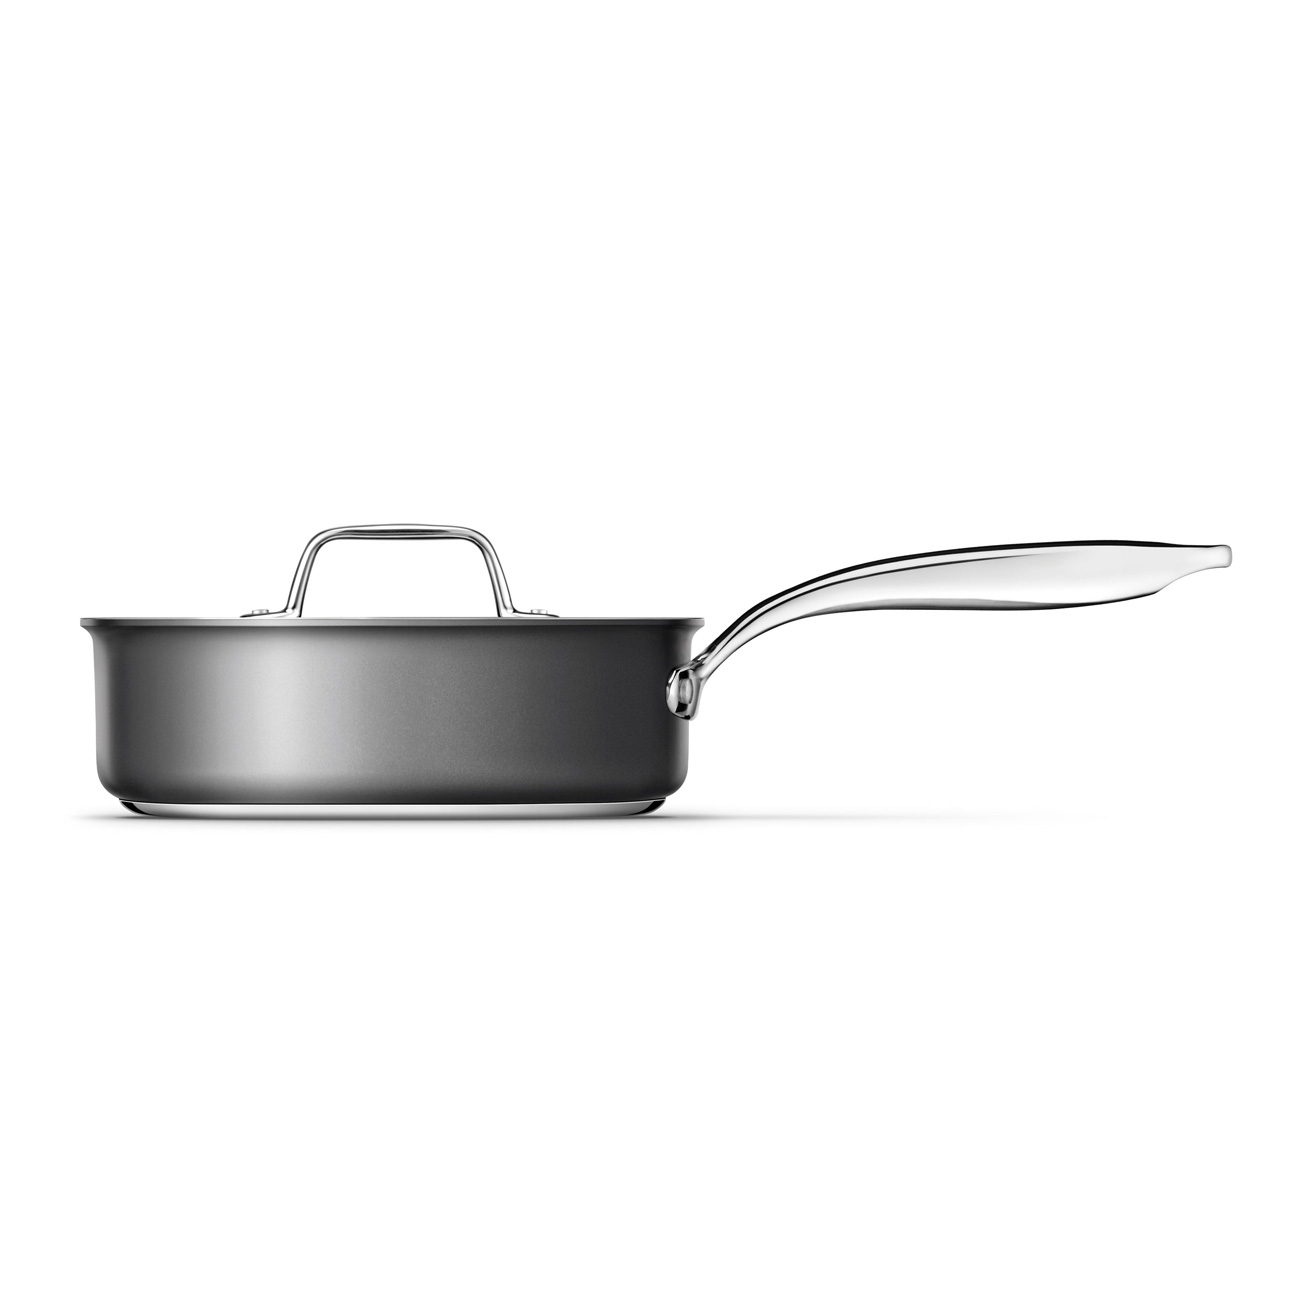 Thermal Pro® Hard Anodized Covered 3.5qt Sauté Pan